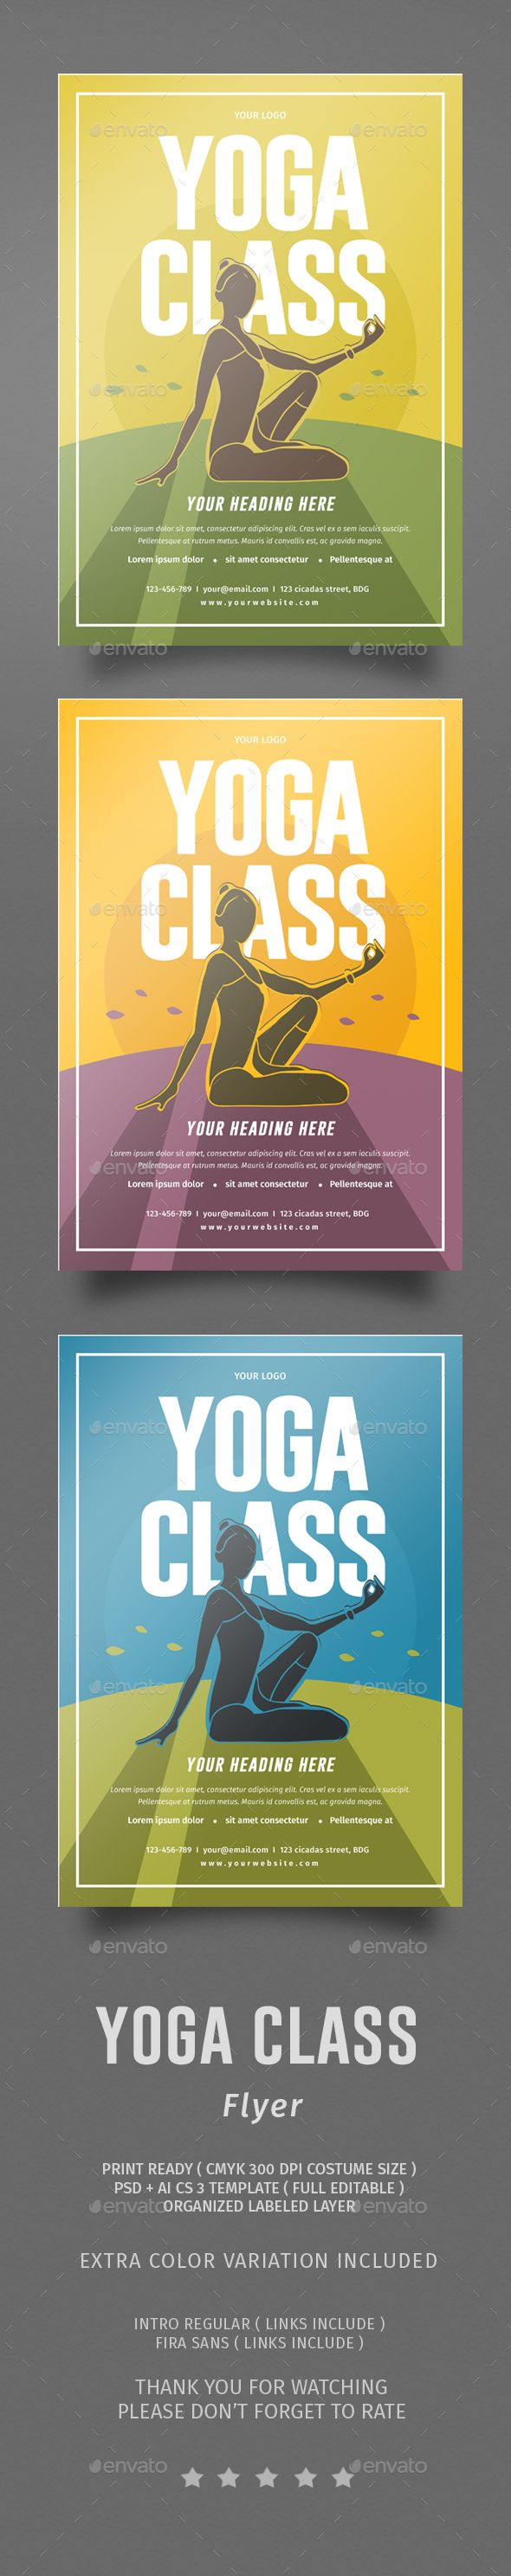 Pin By Bashooka Web Graphic Design On Flyer Template Pinterest